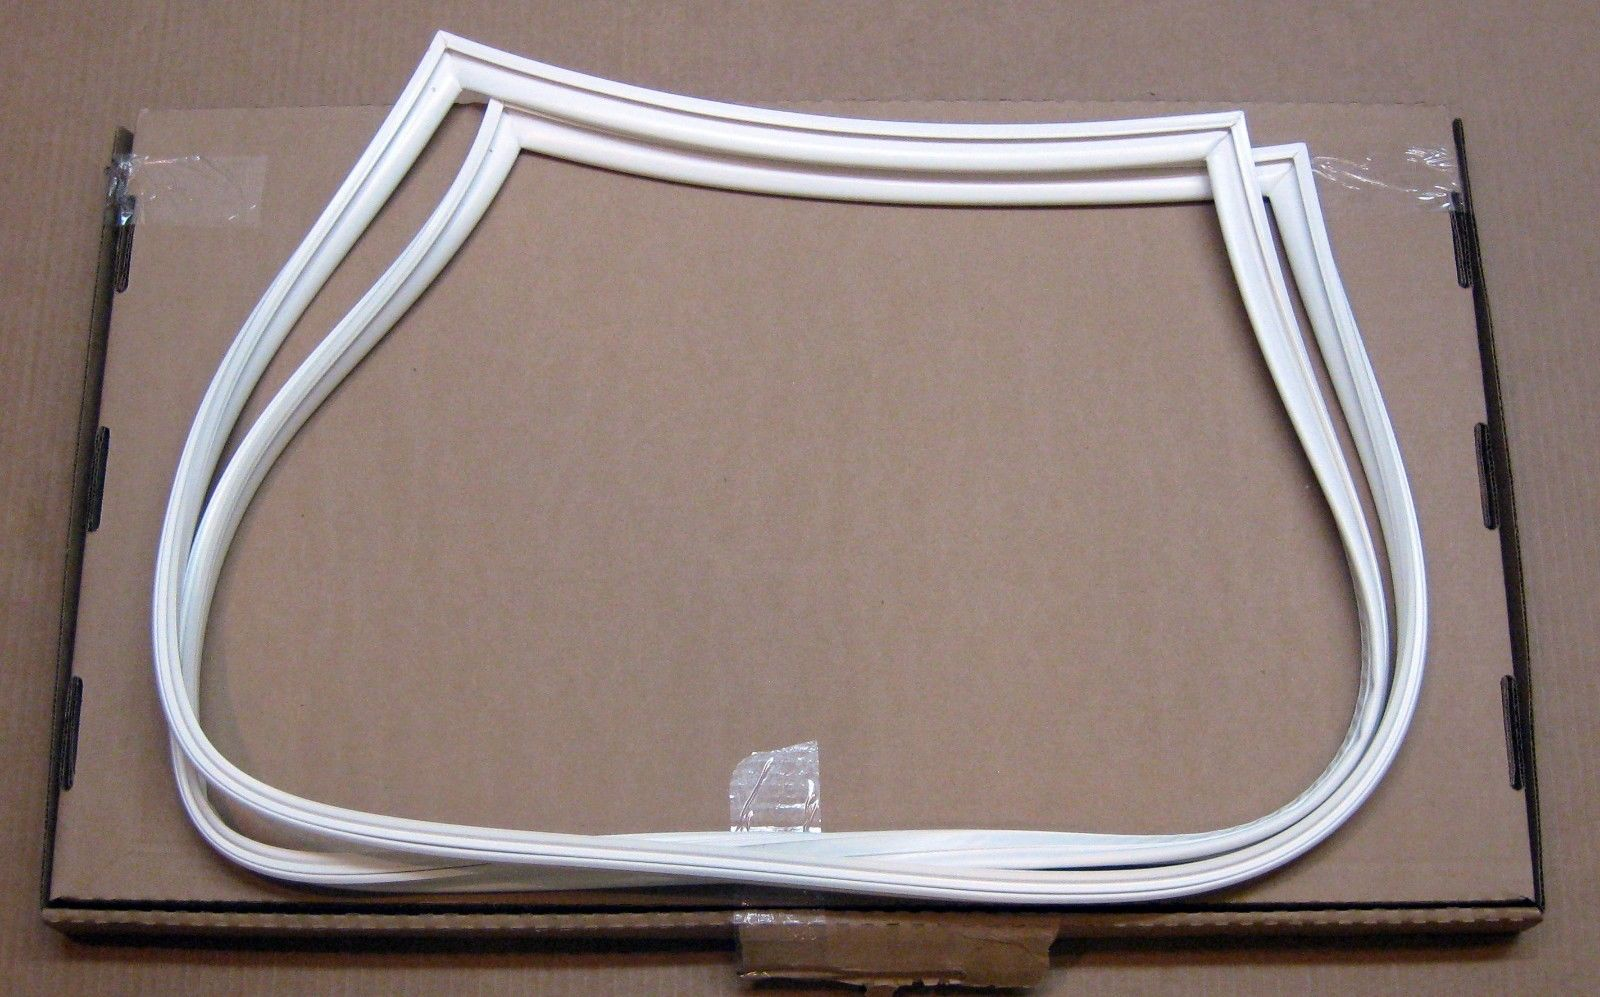 2188404a replaces whirlpool refrigerator door gasket seal. Black Bedroom Furniture Sets. Home Design Ideas